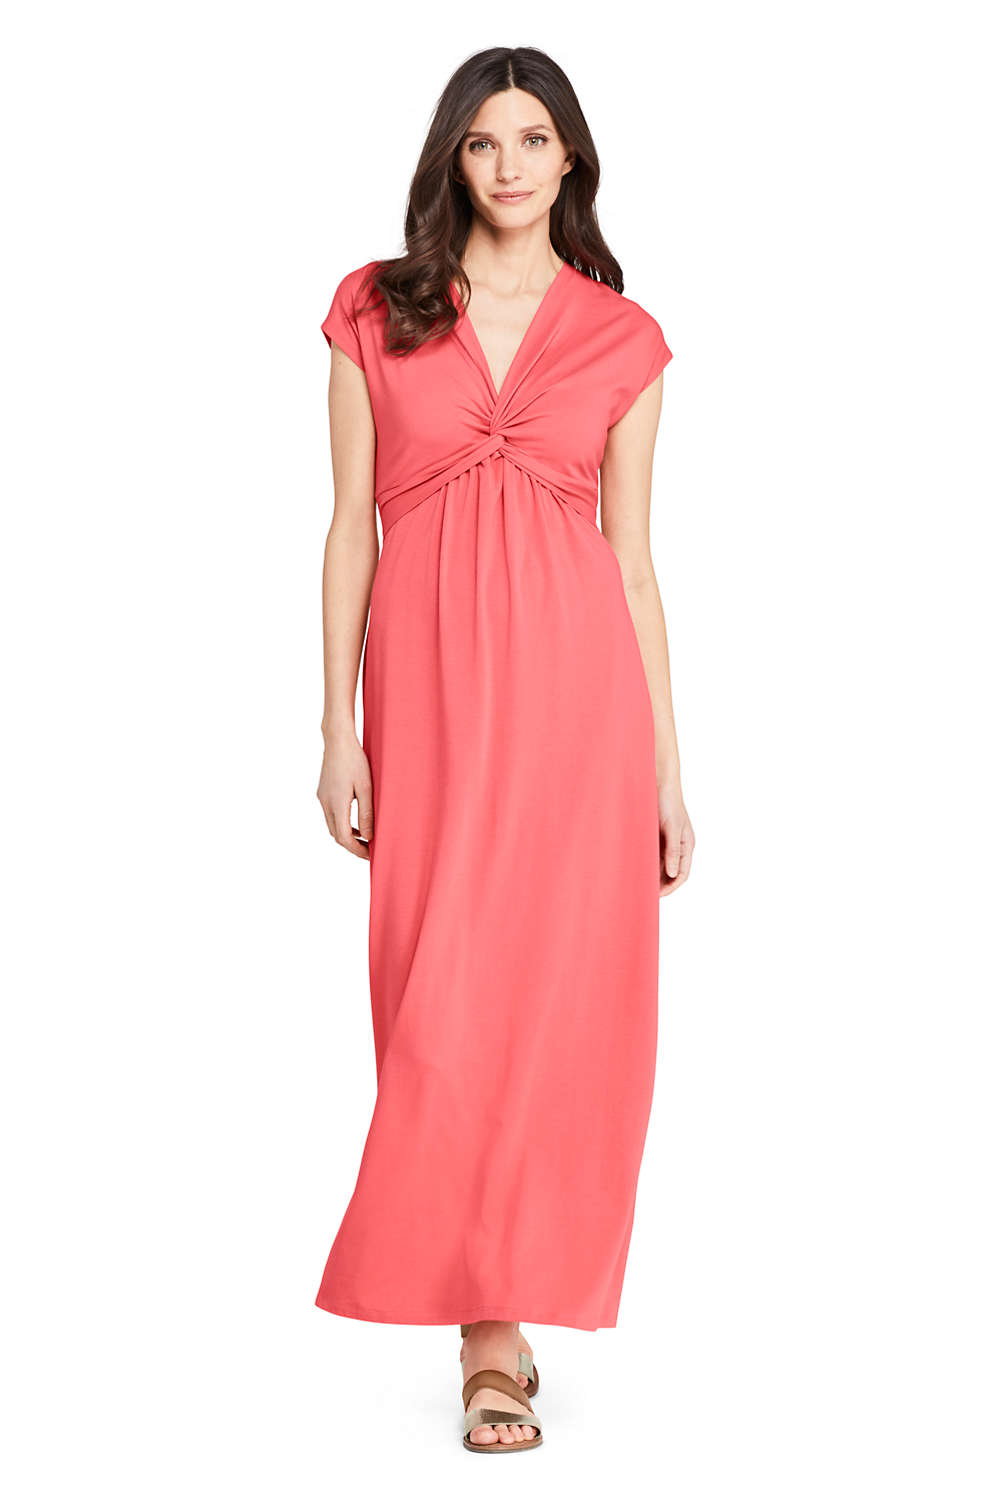 d201d5ff0 Women's Cap Sleeve Knit Knot Front Maxi Dress from Lands' End